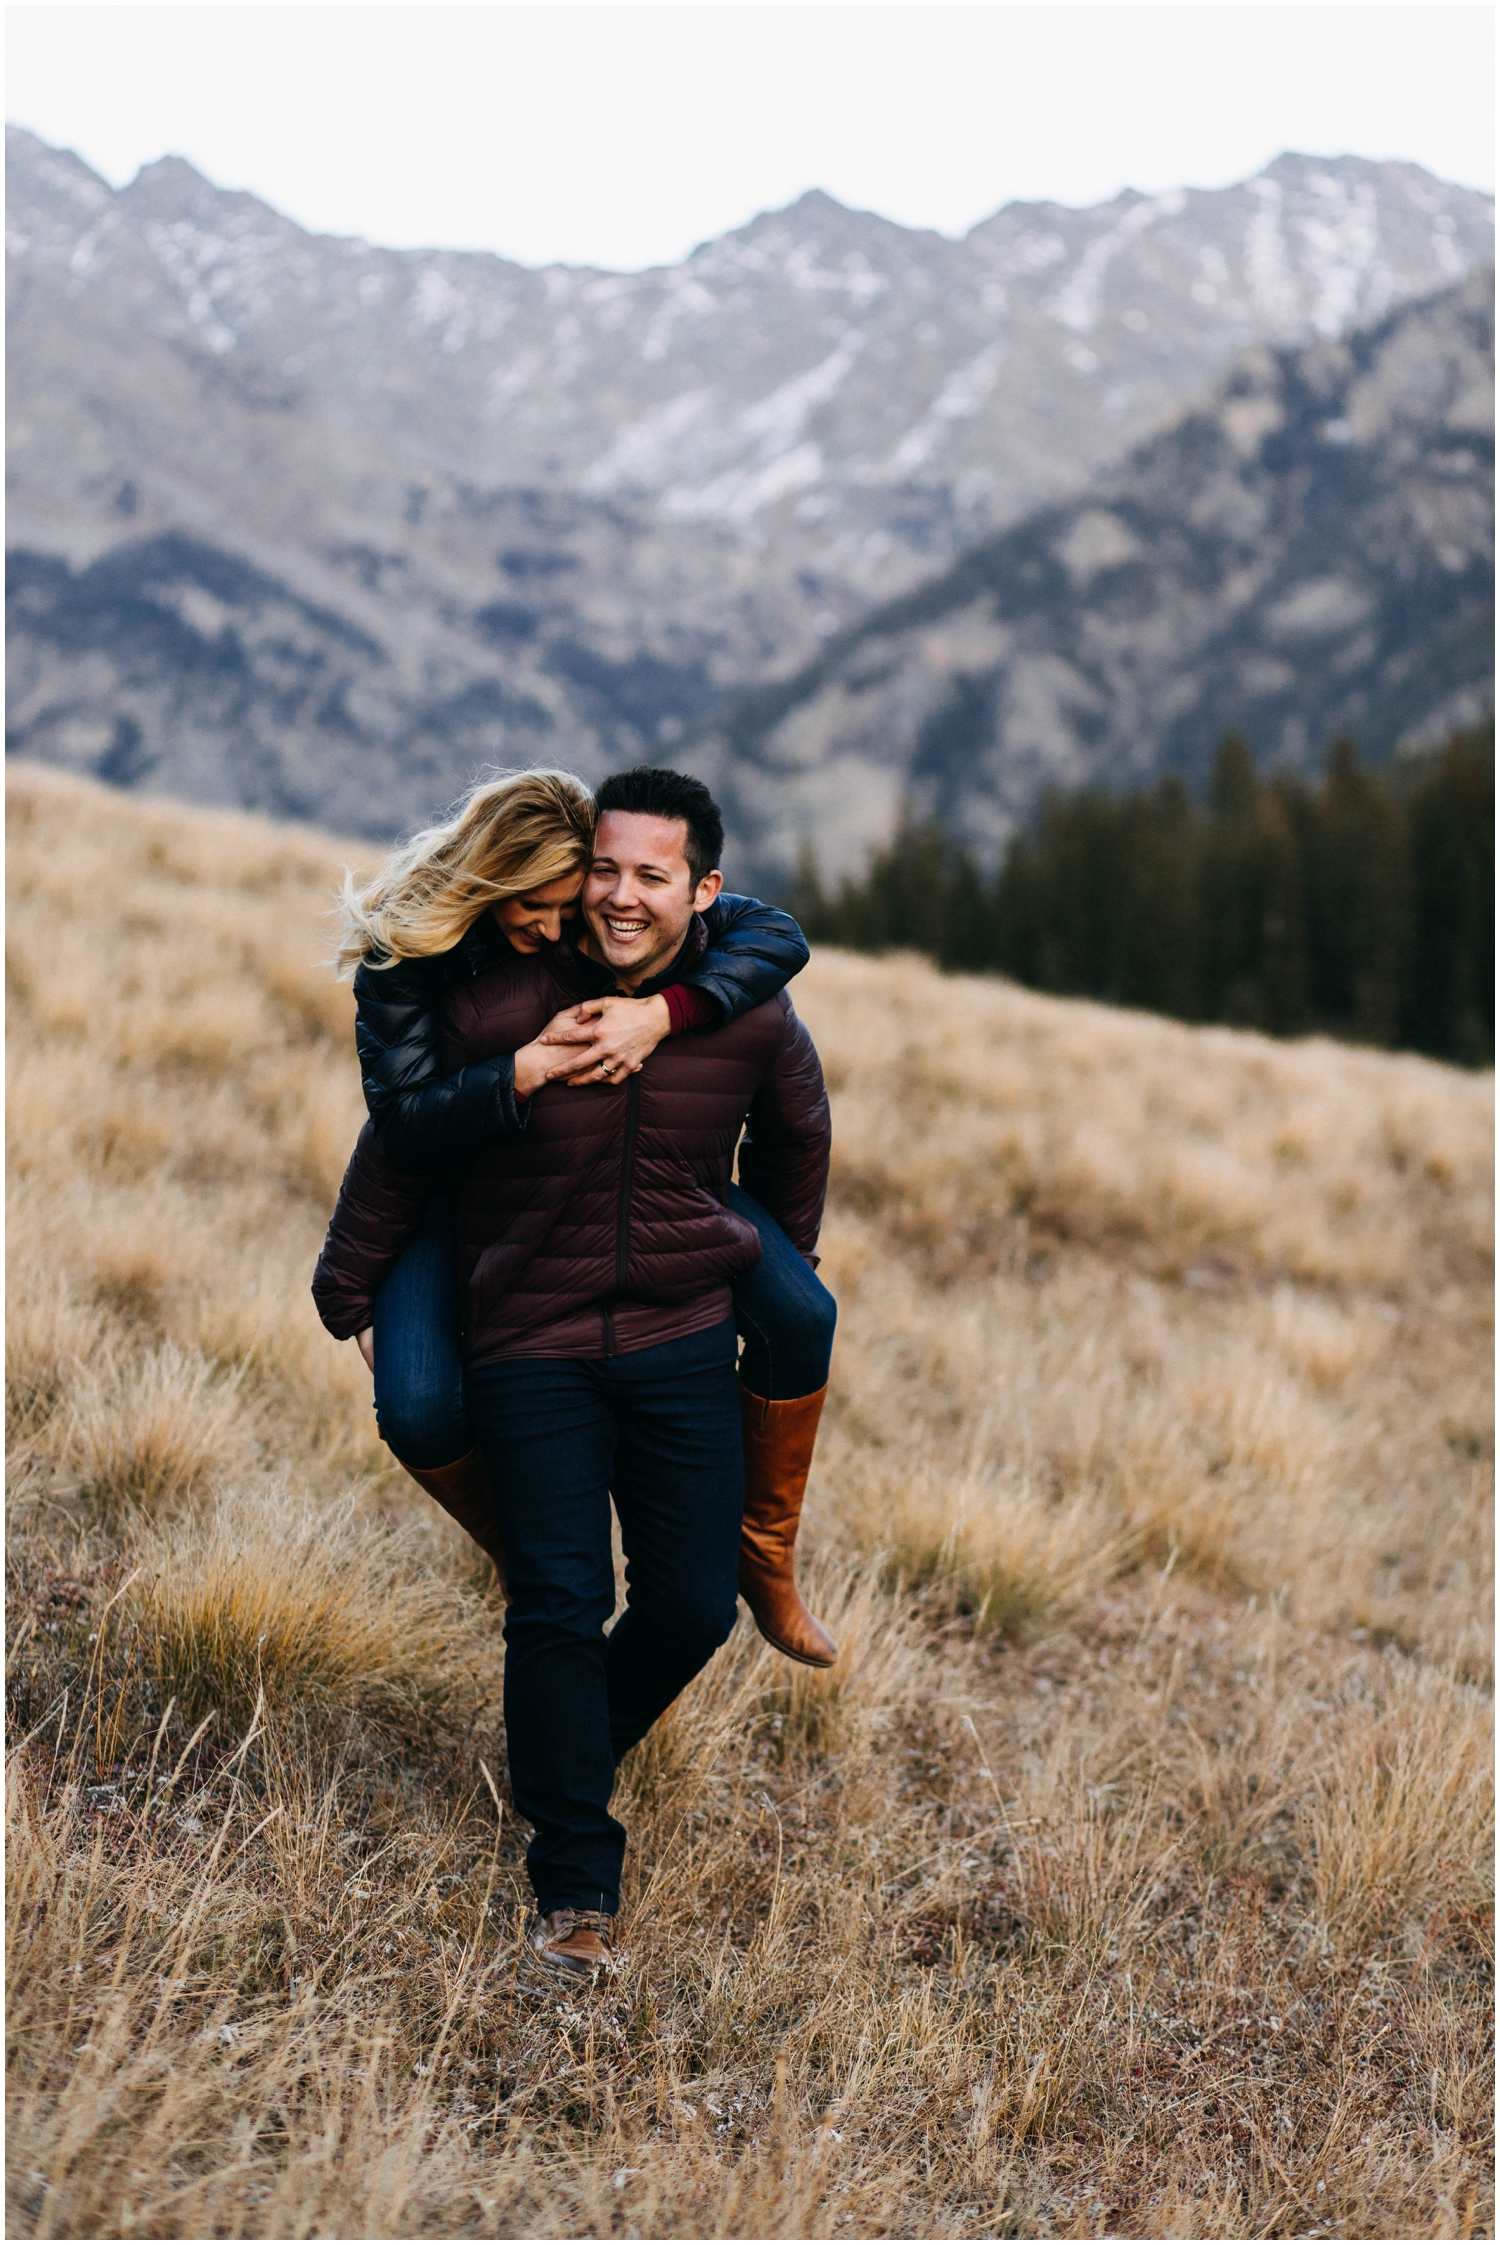 taylor_powers_best_of_2017_highlights_adventure_couple_photography_0223.jpg